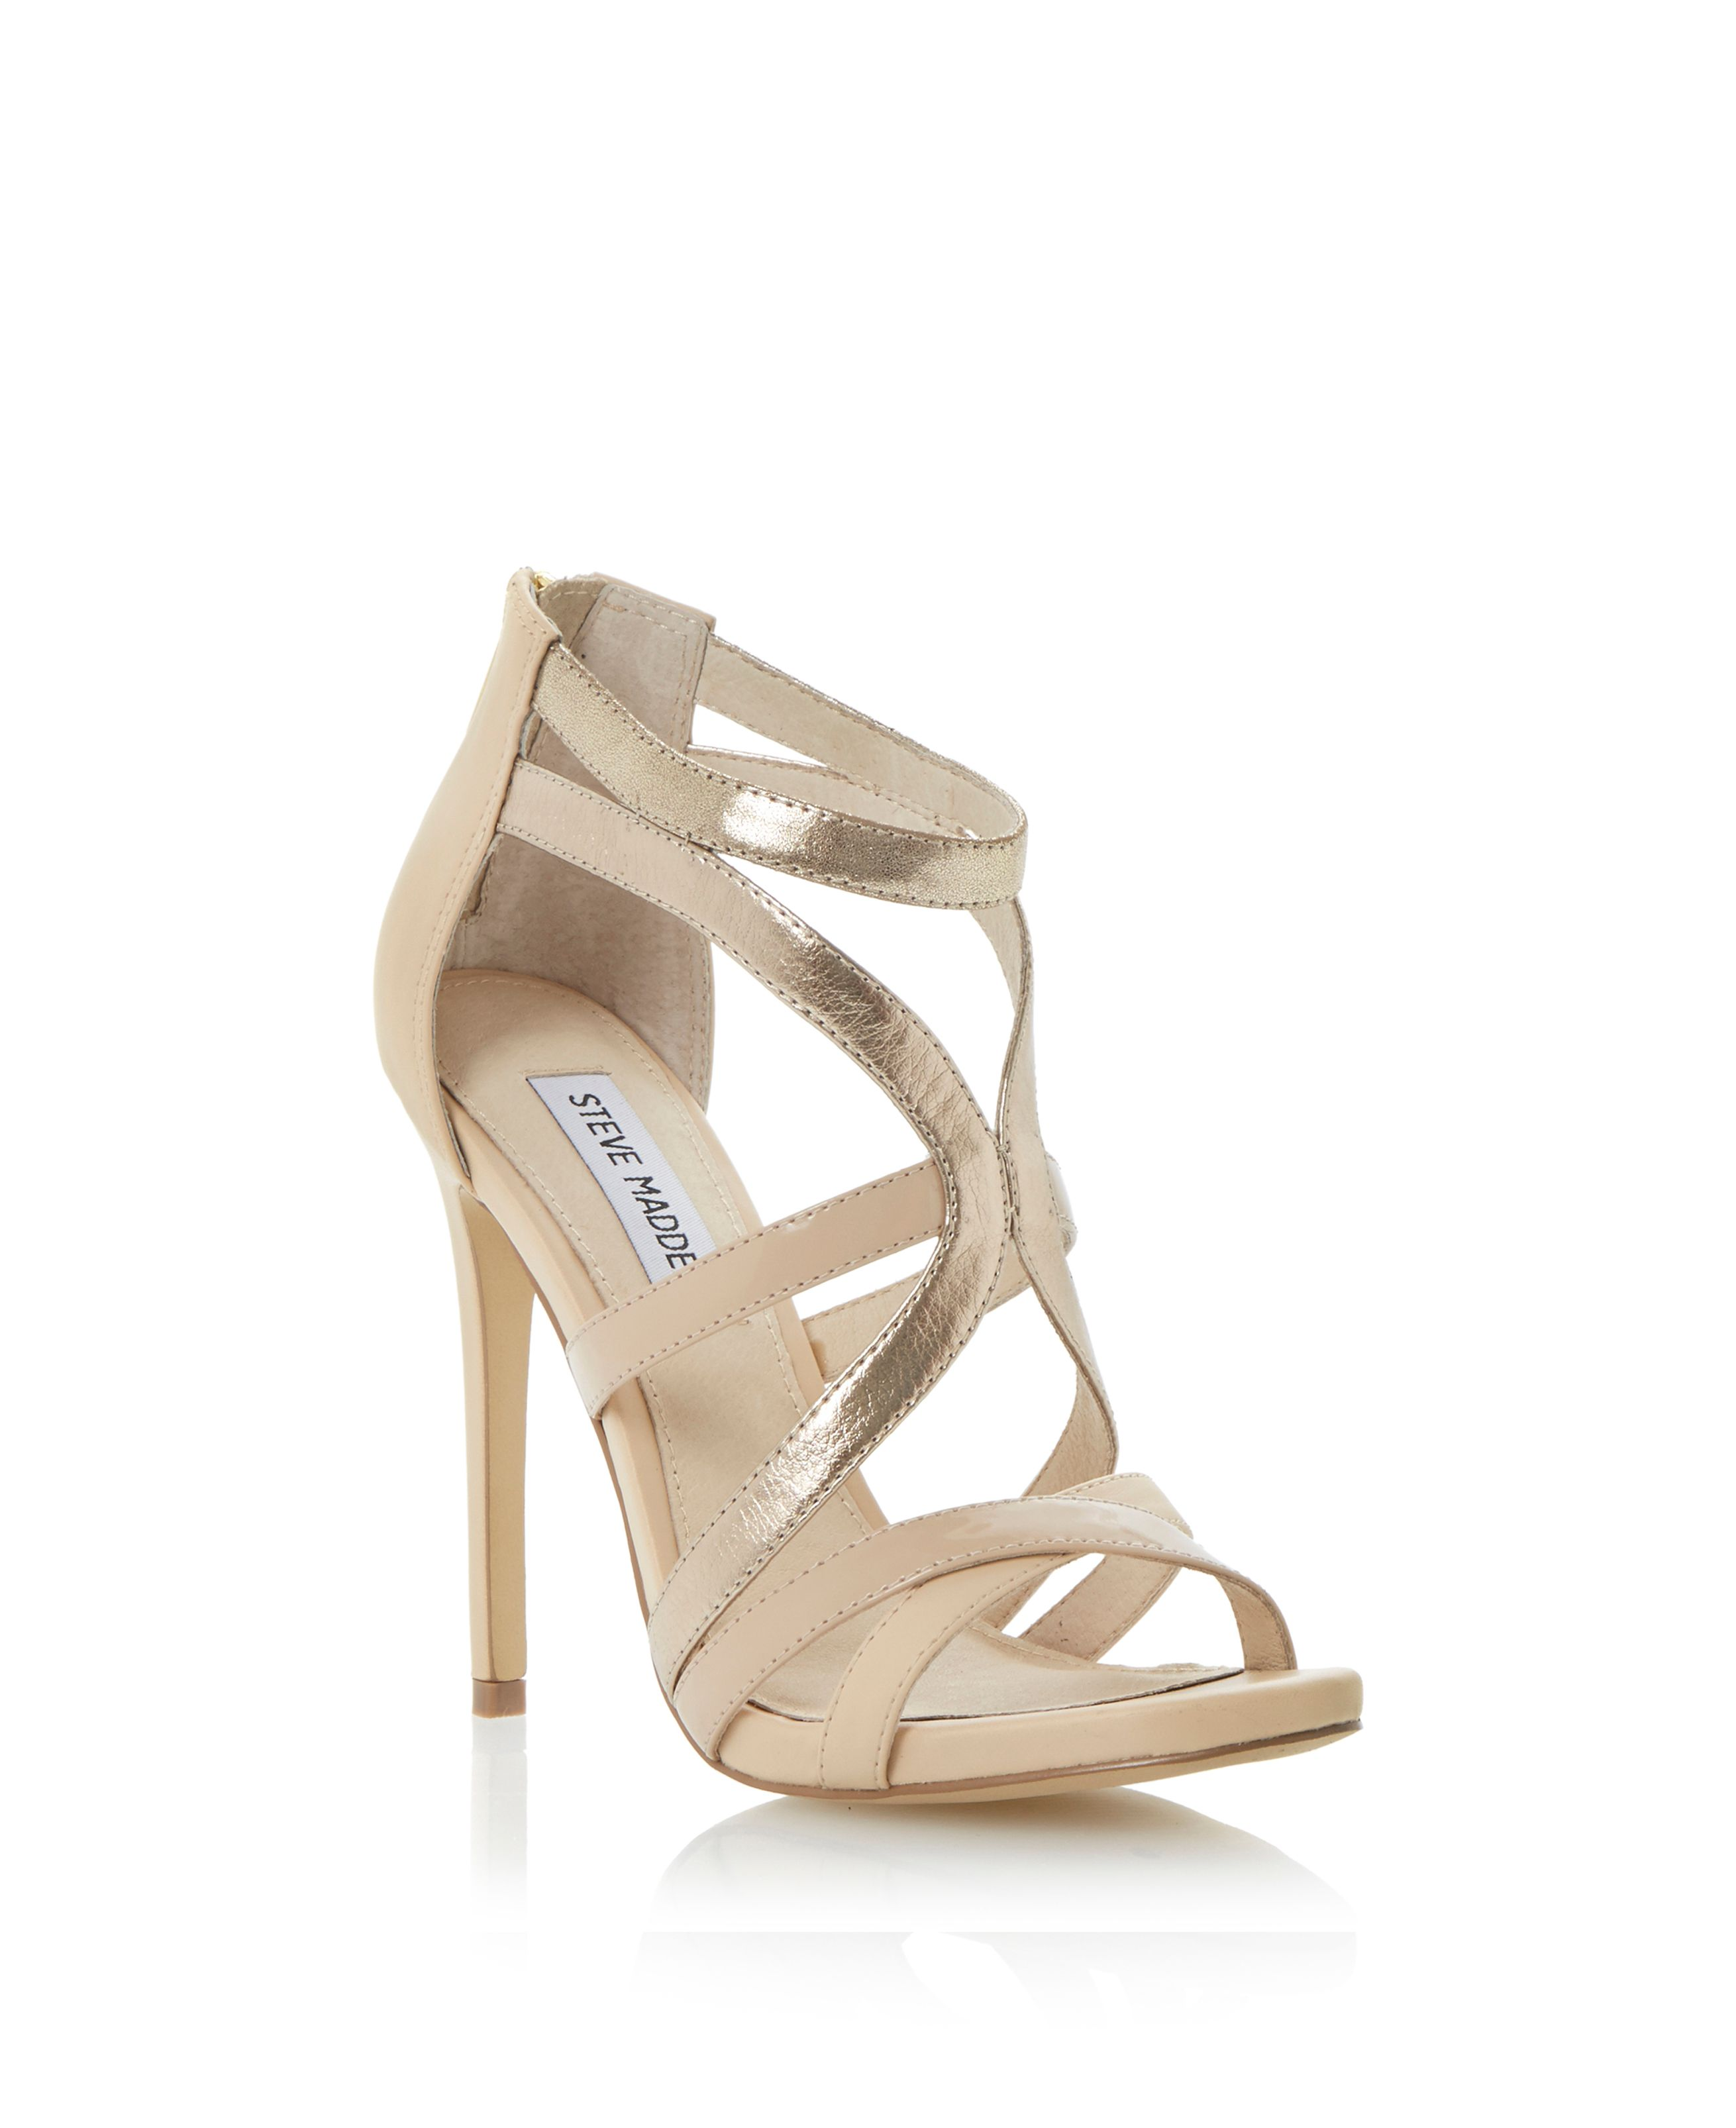 Stella strappy stiletto sandals